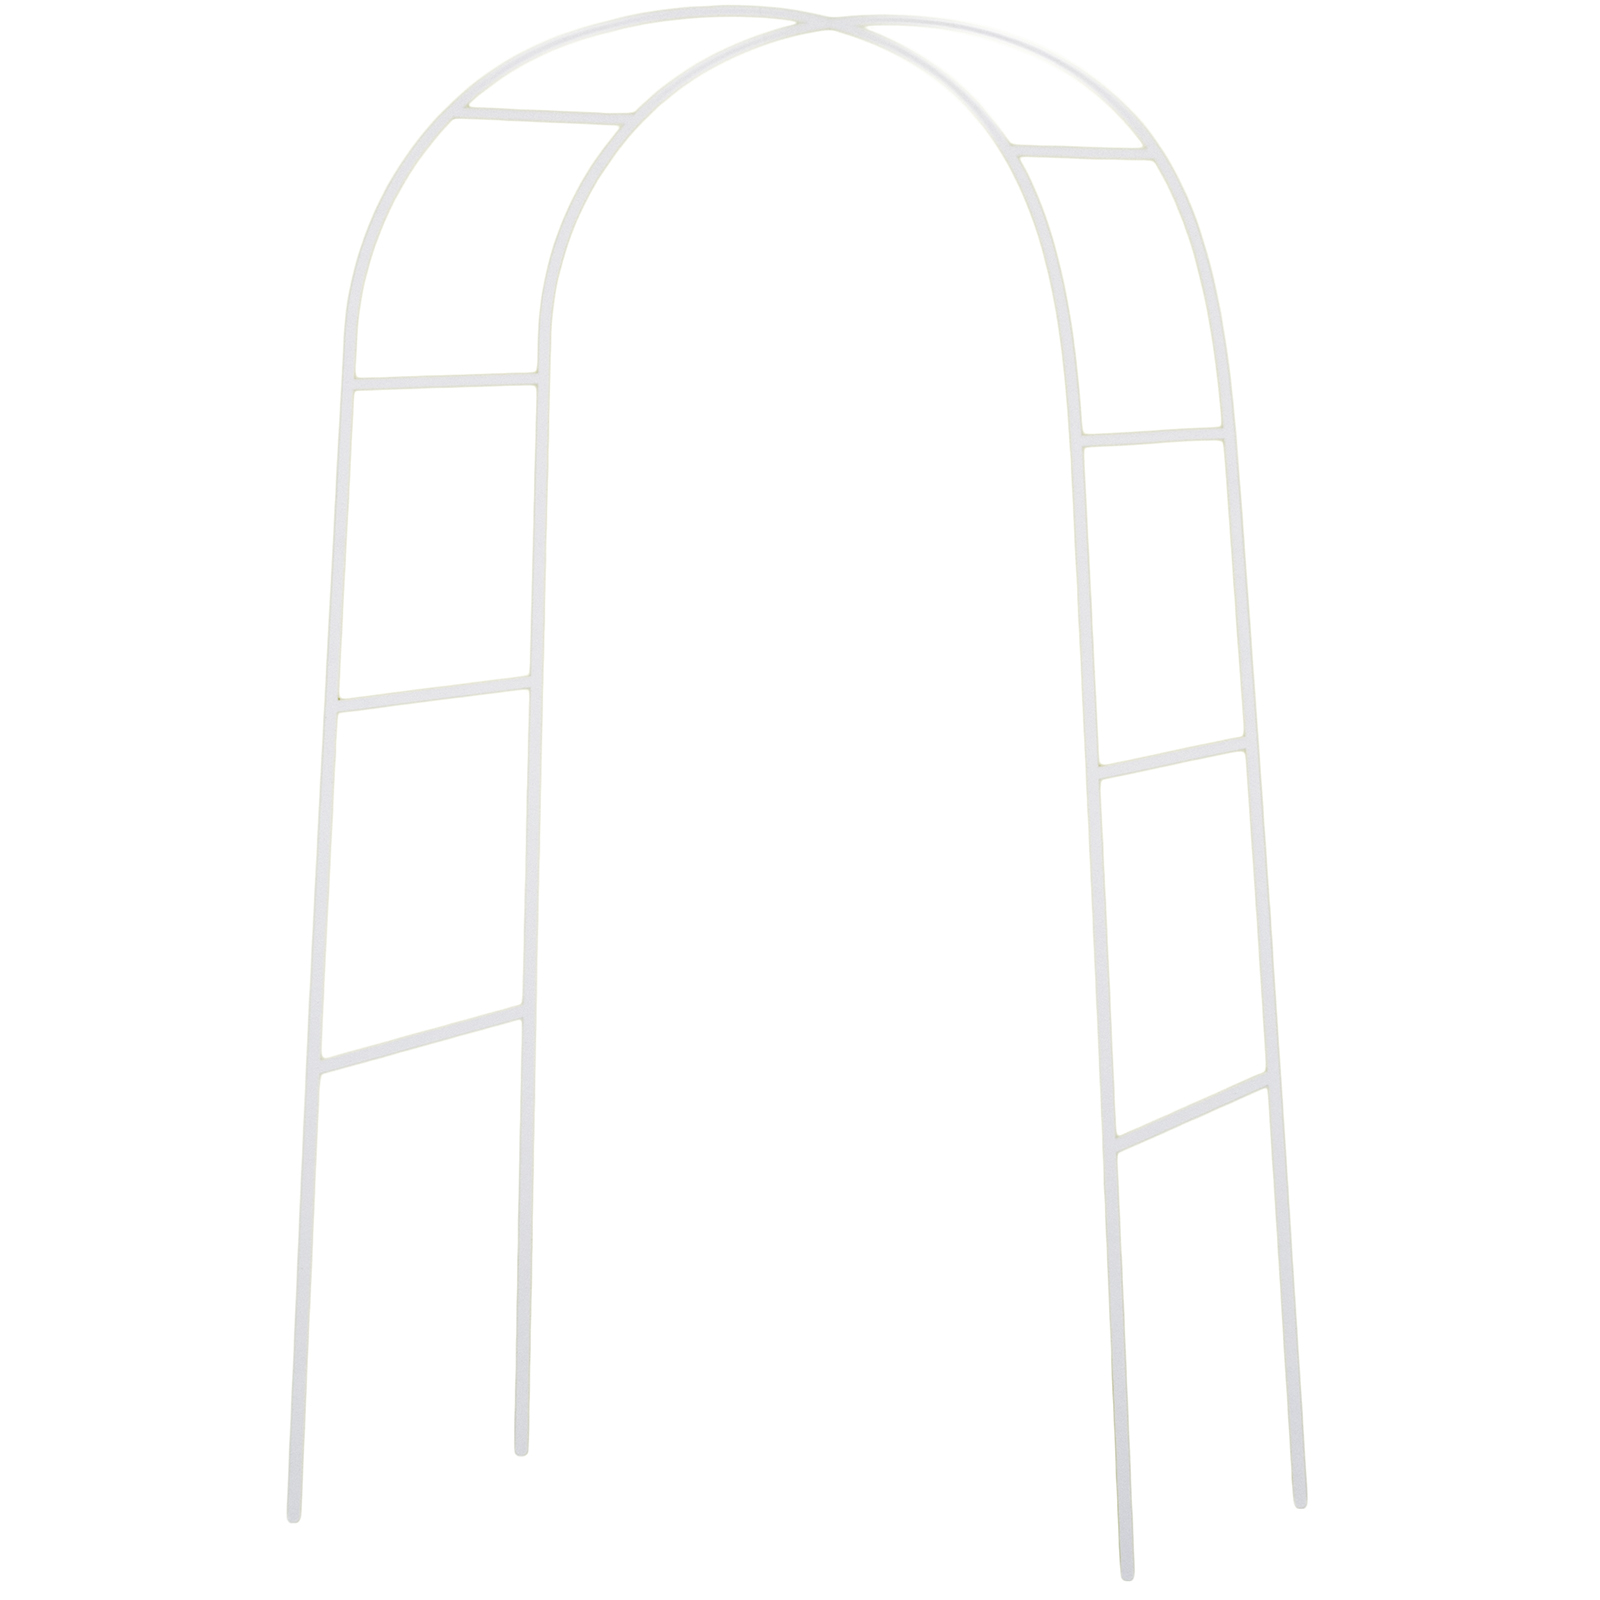 7 5 Ft White Metal Arch Wedding Garden Bridal Party Decoration